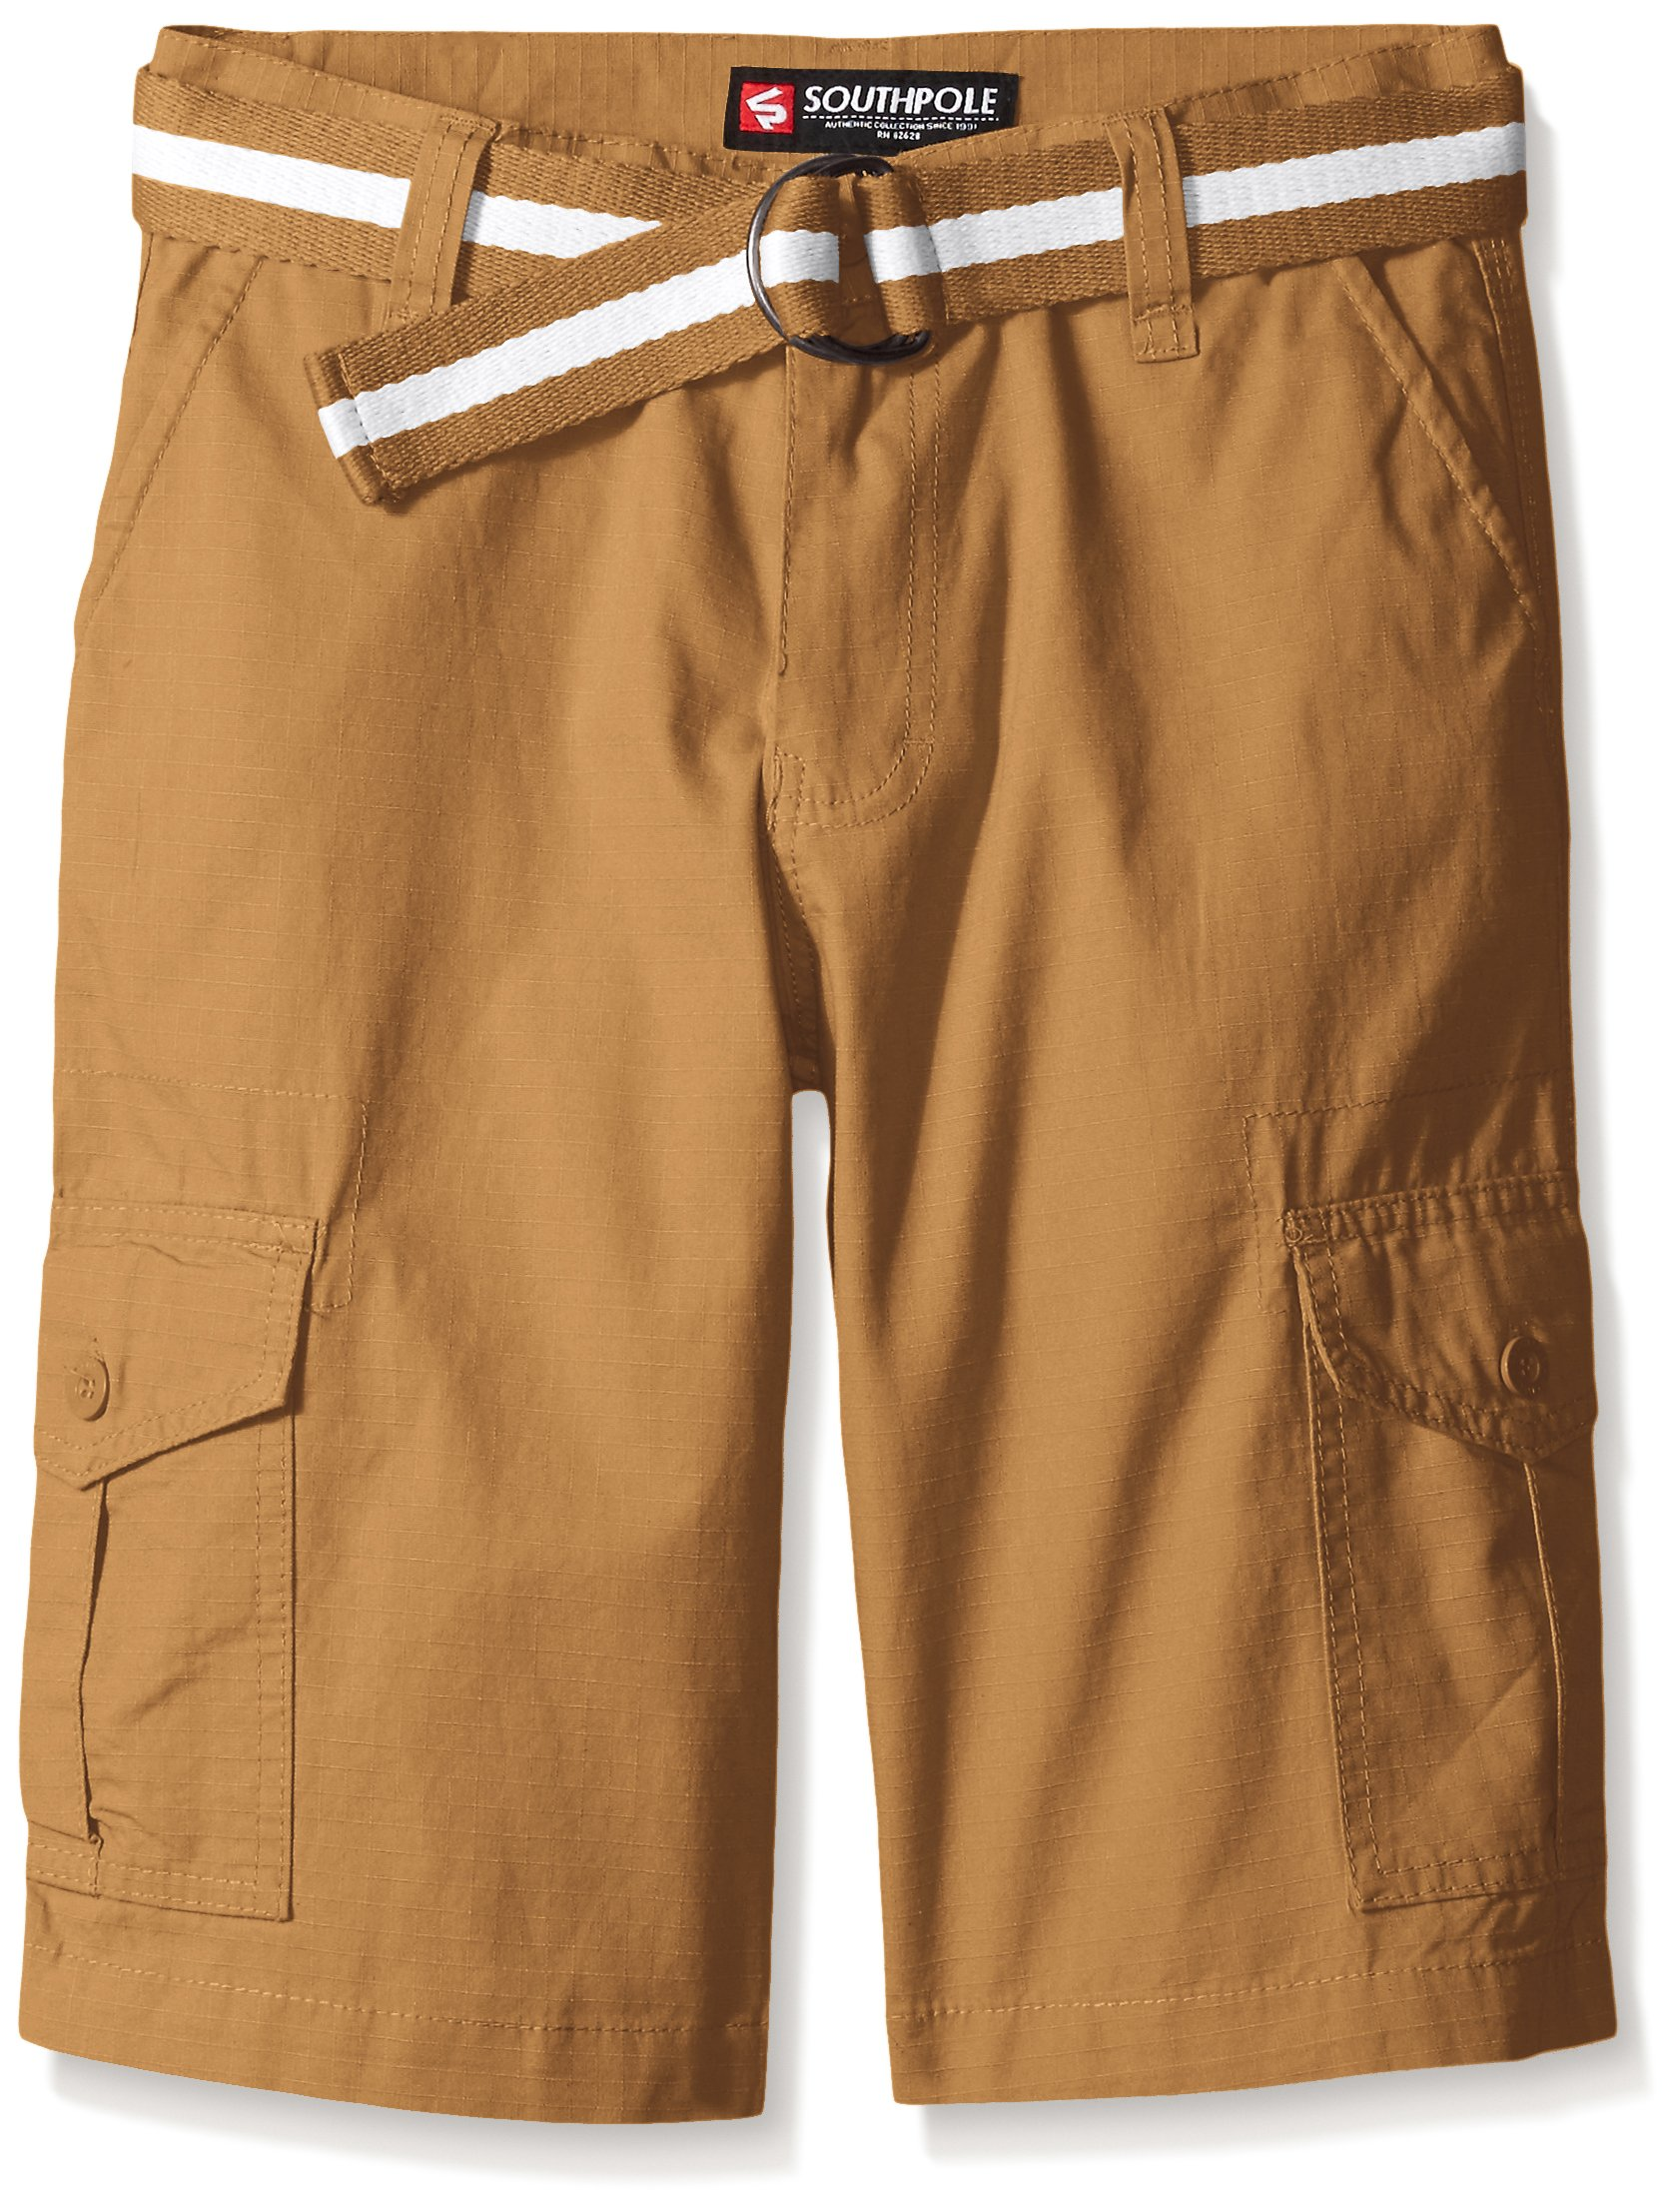 Southpole Boys' Belted Ripstop Basic Cargo Shorts, Wheat, 10